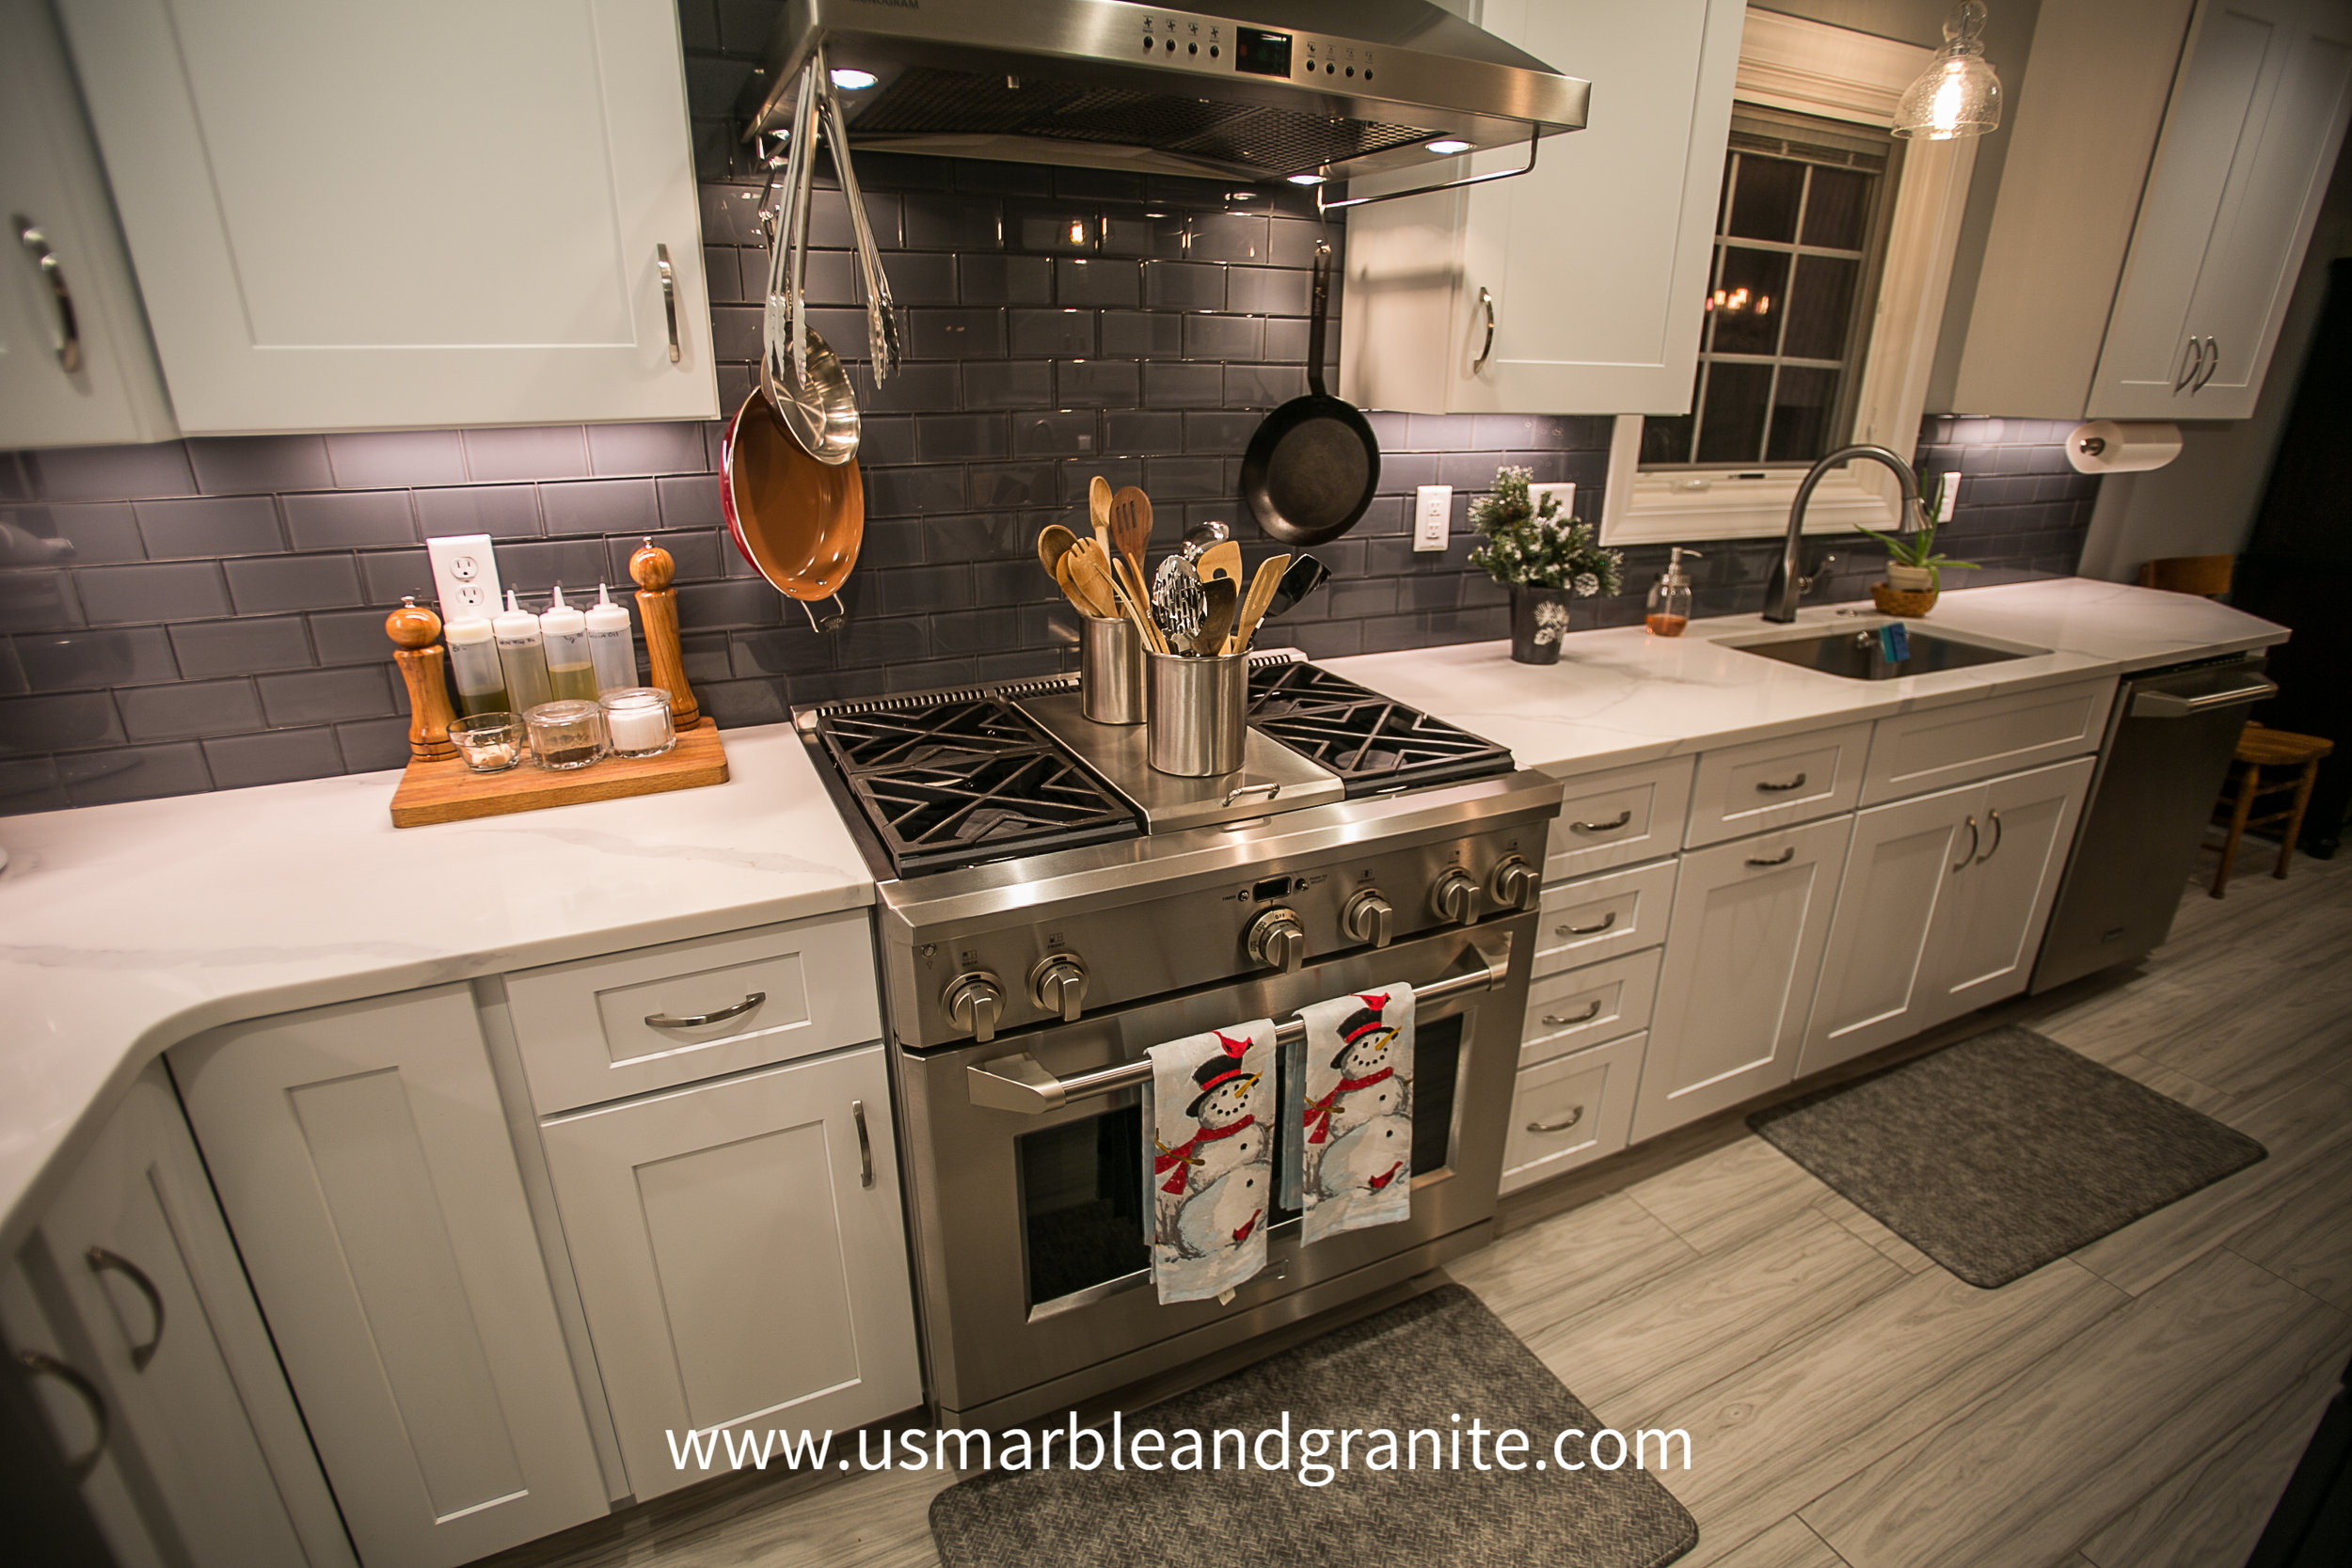 """Quartz perimeter countertops. For customers wanting the """"Marble"""" look with increased durability, Quartz is the #1 choice."""